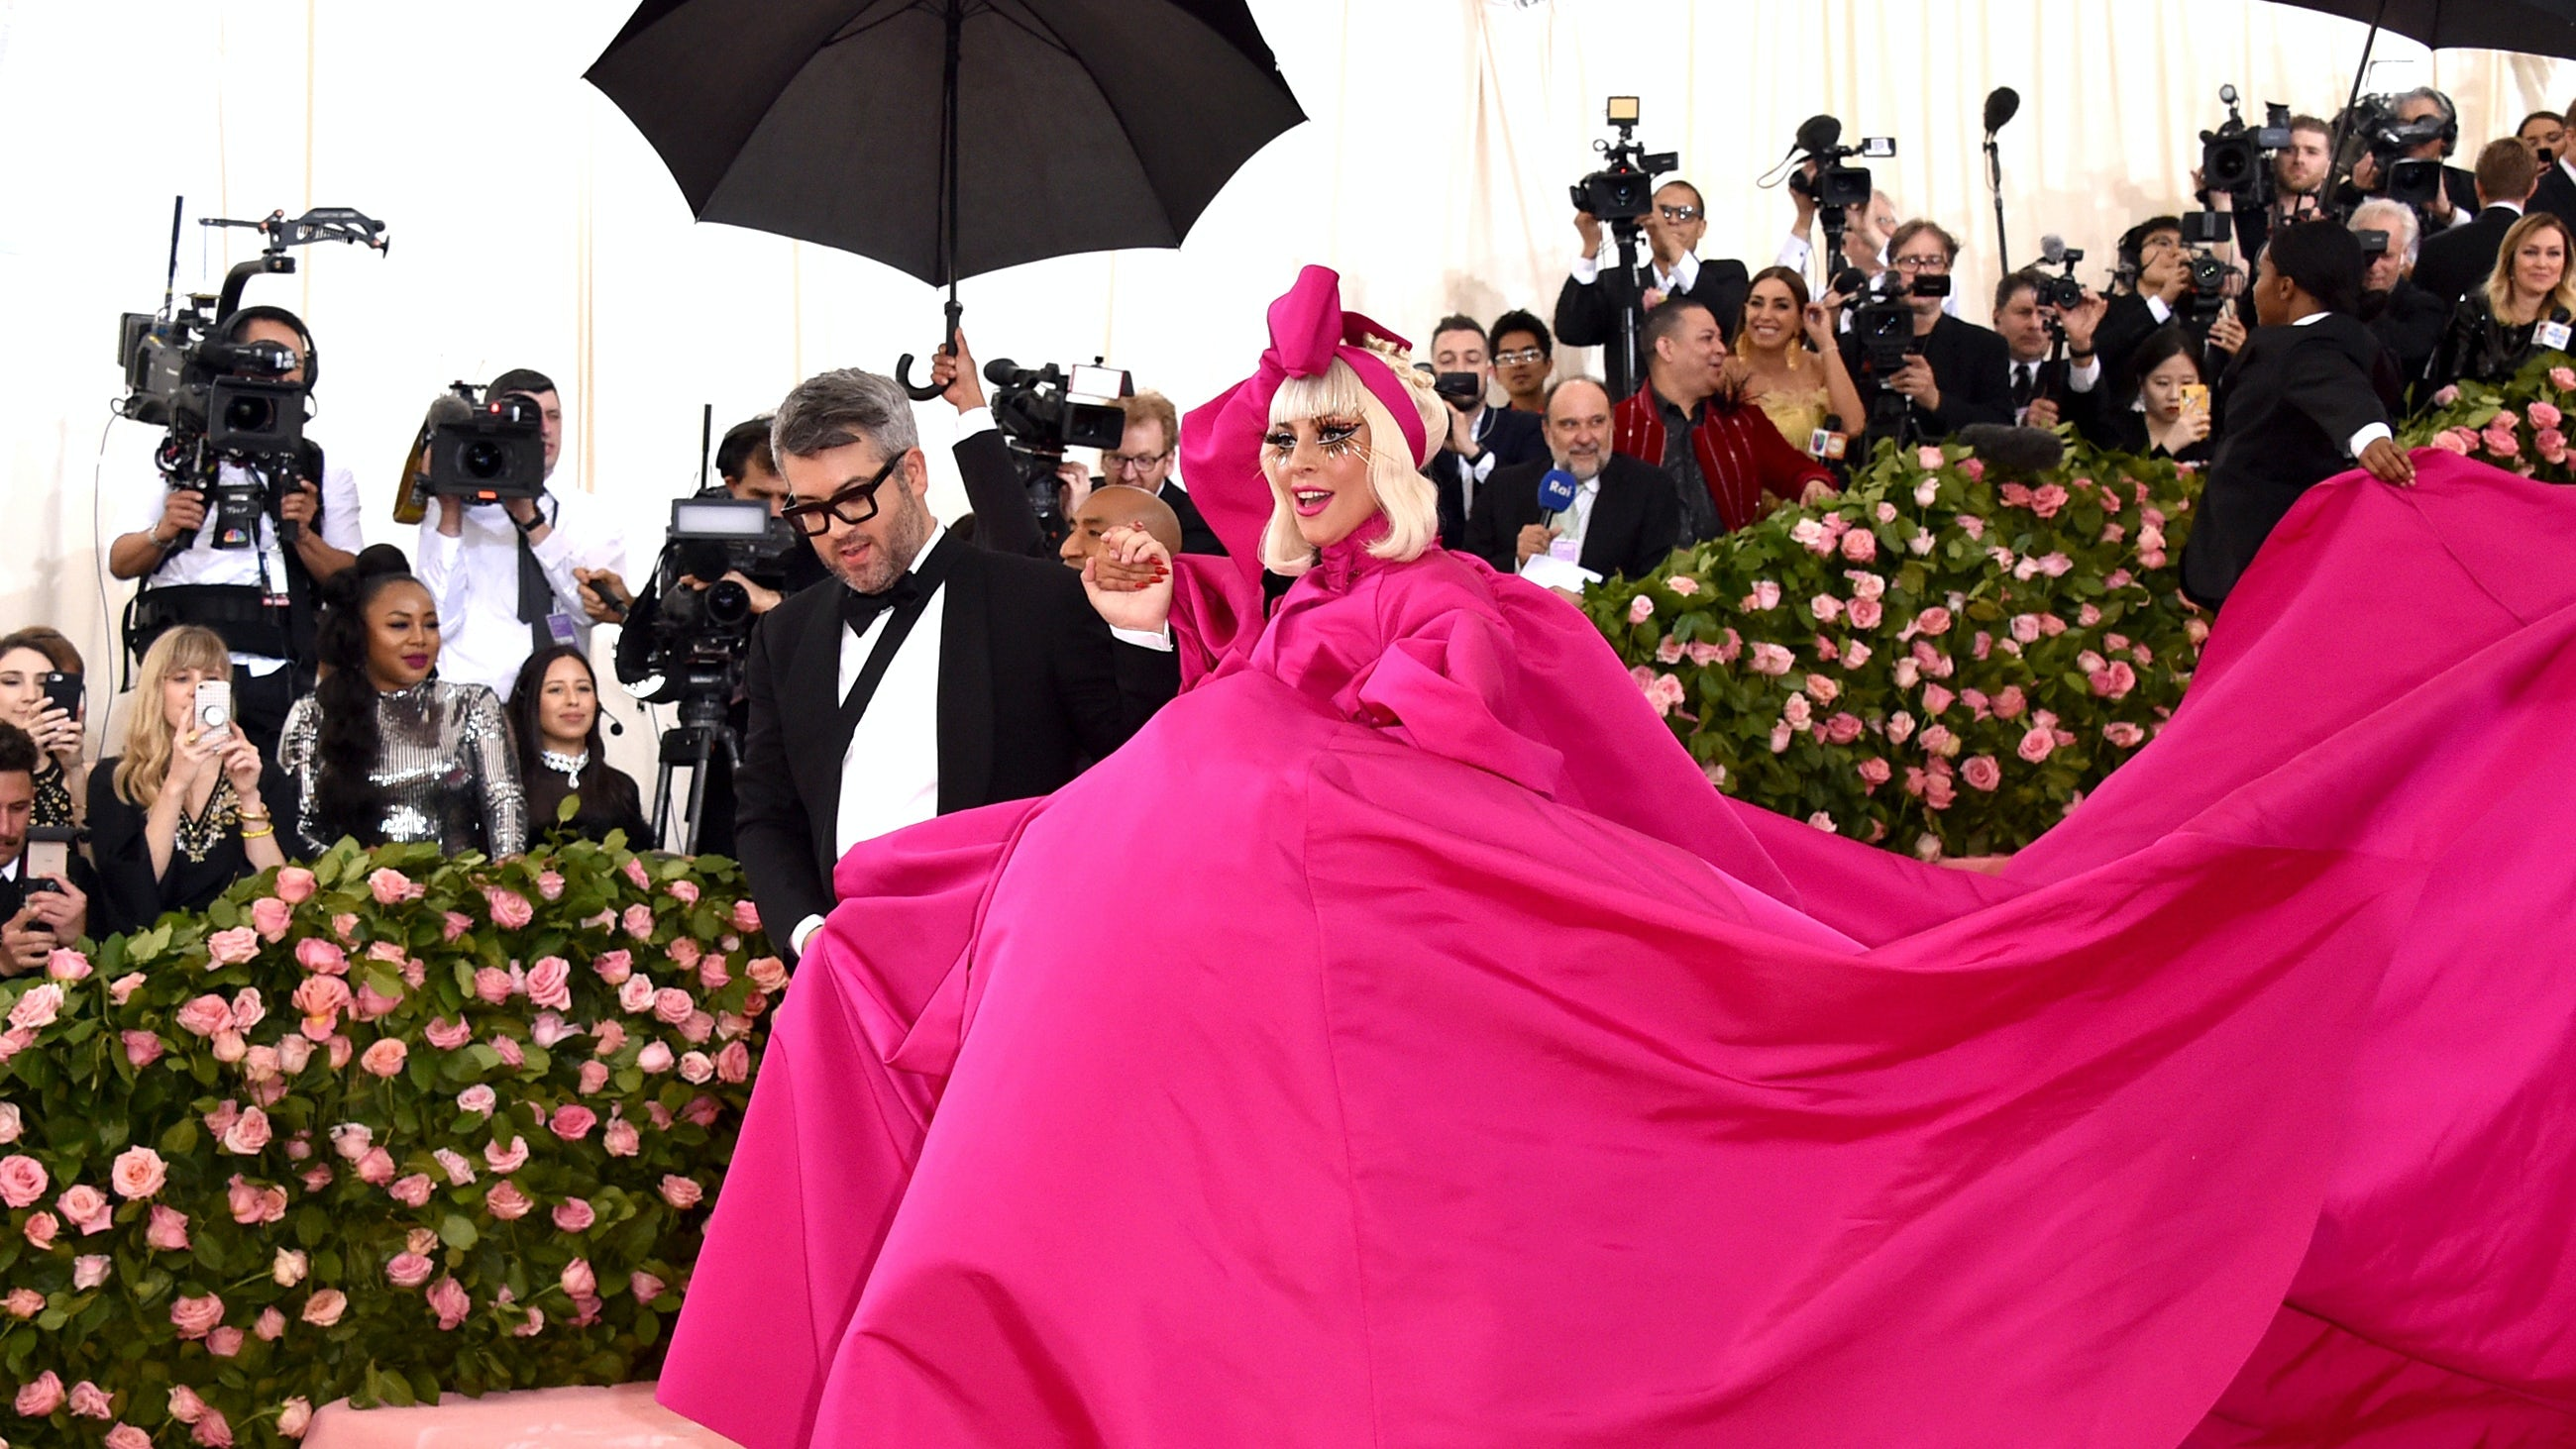 Brandon Maxwell and Lady Gaga at the Met Gala. Getty Images.